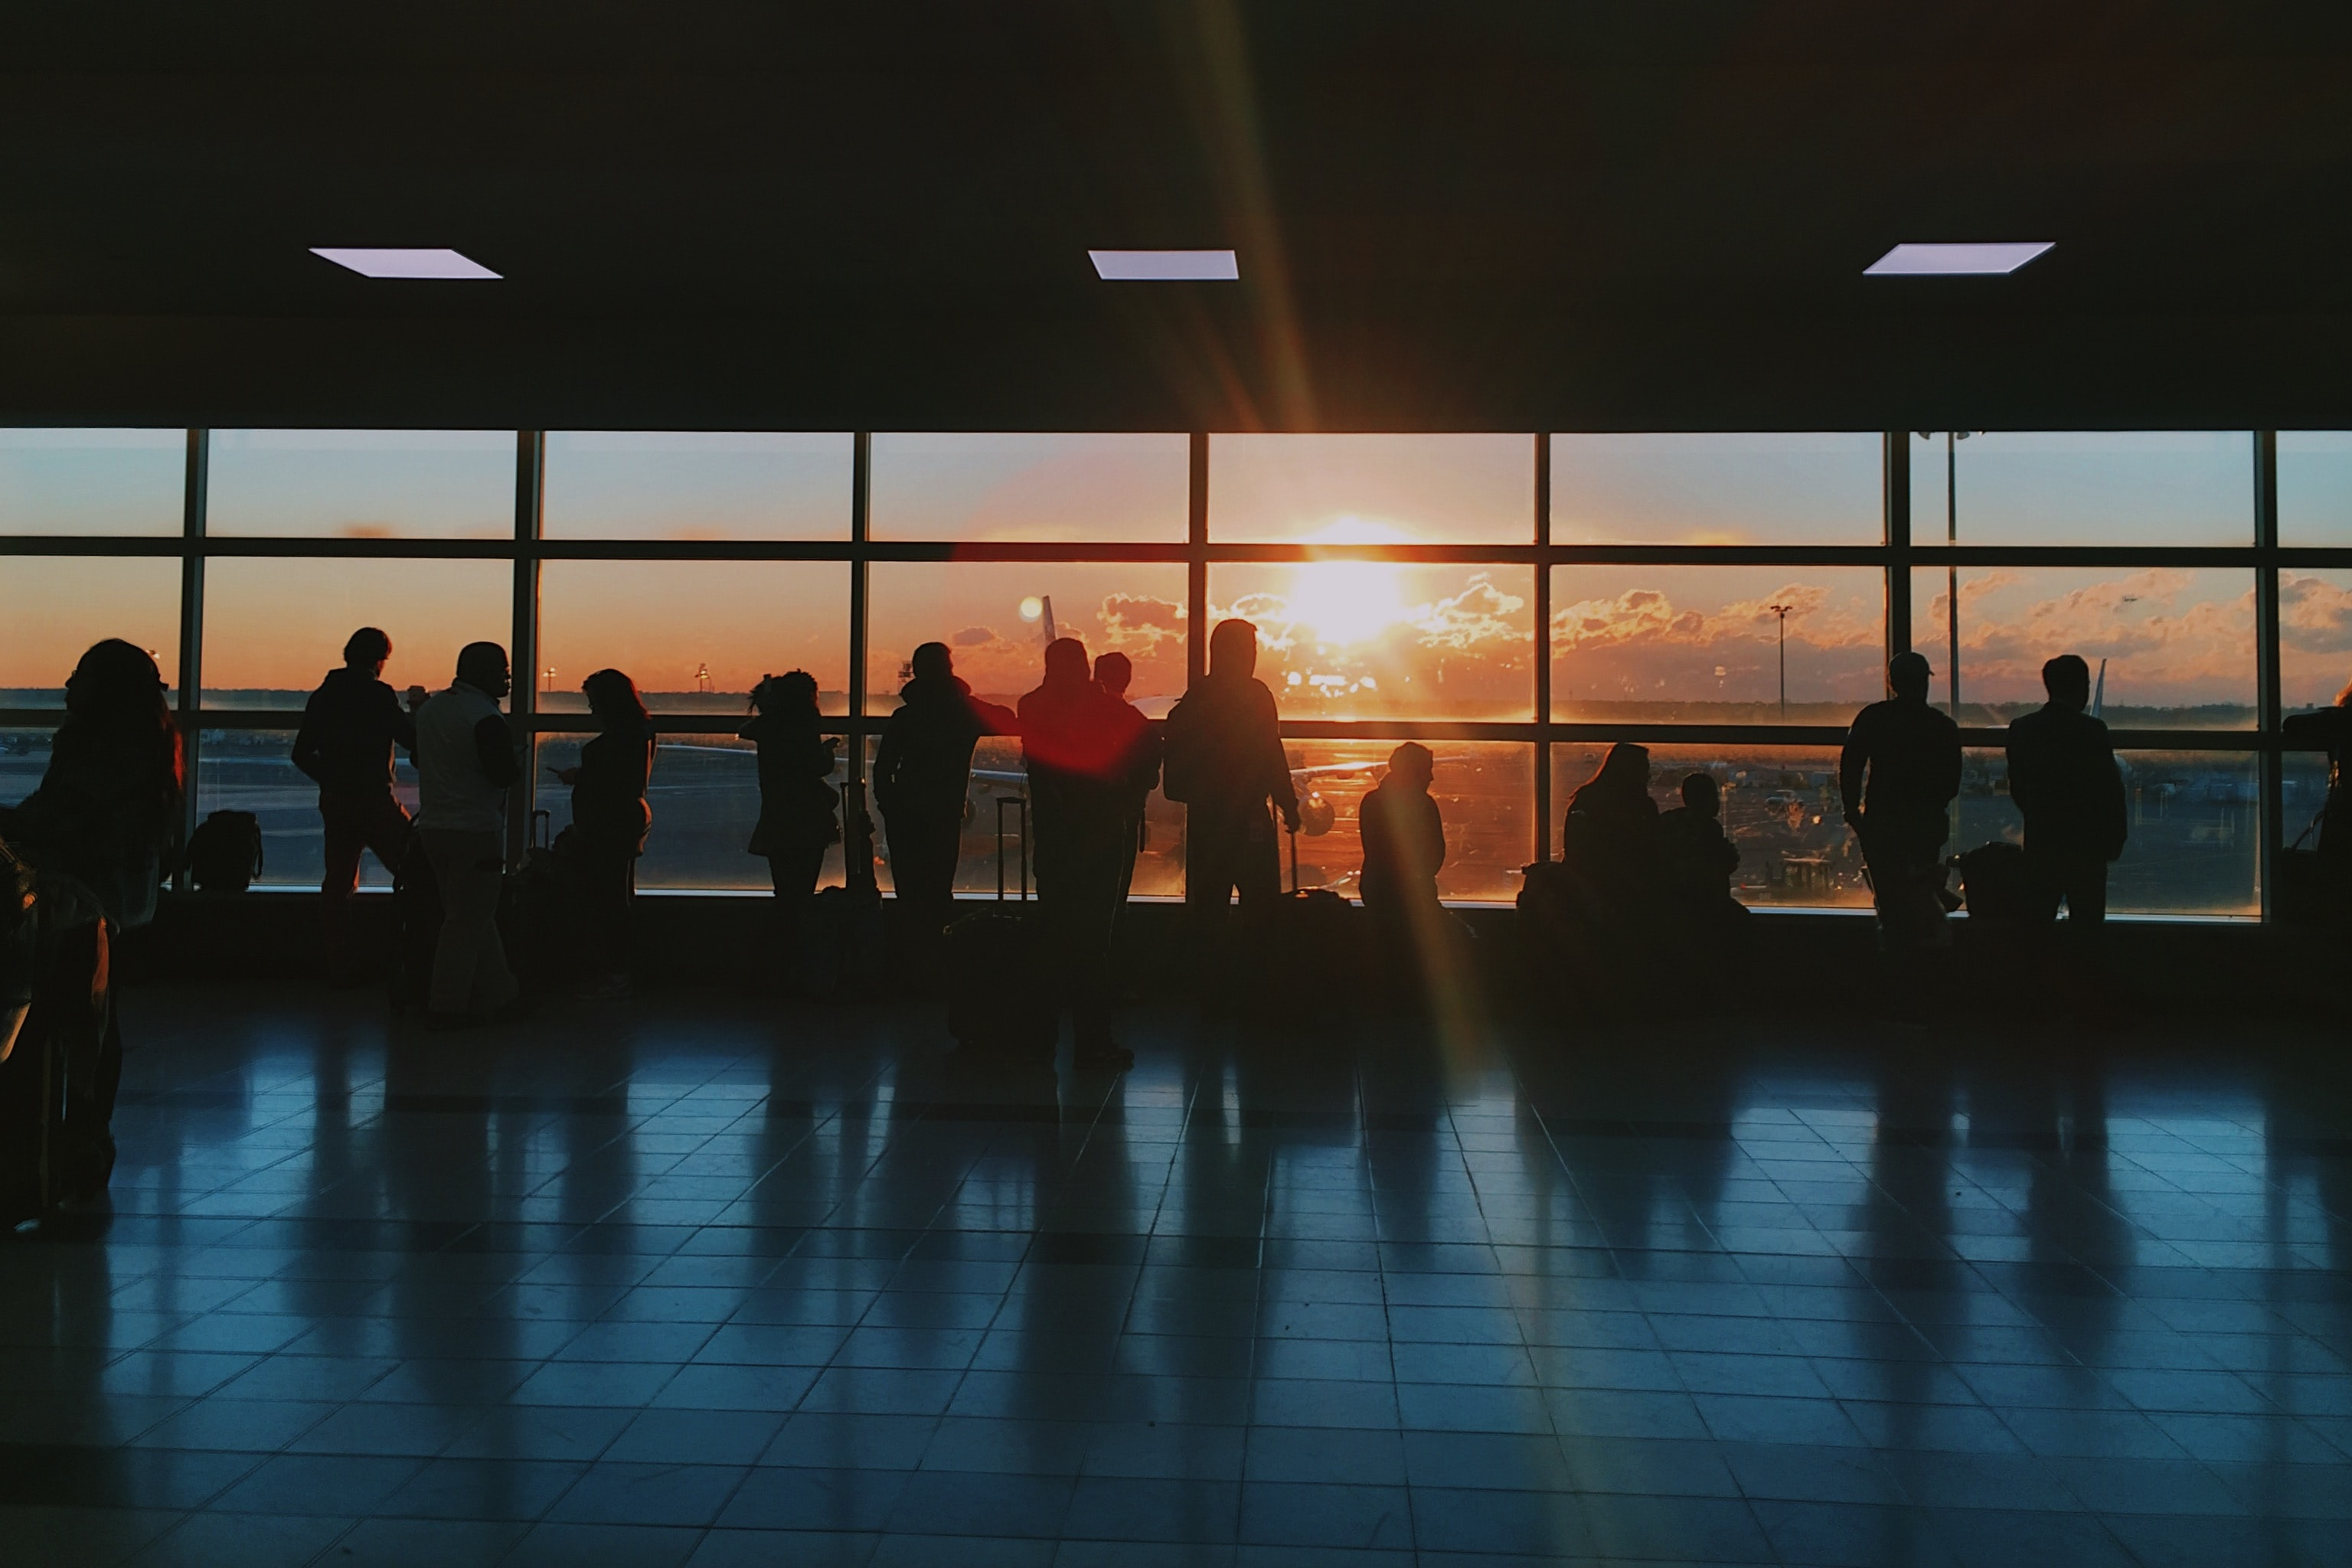 silhouette of people inside airport